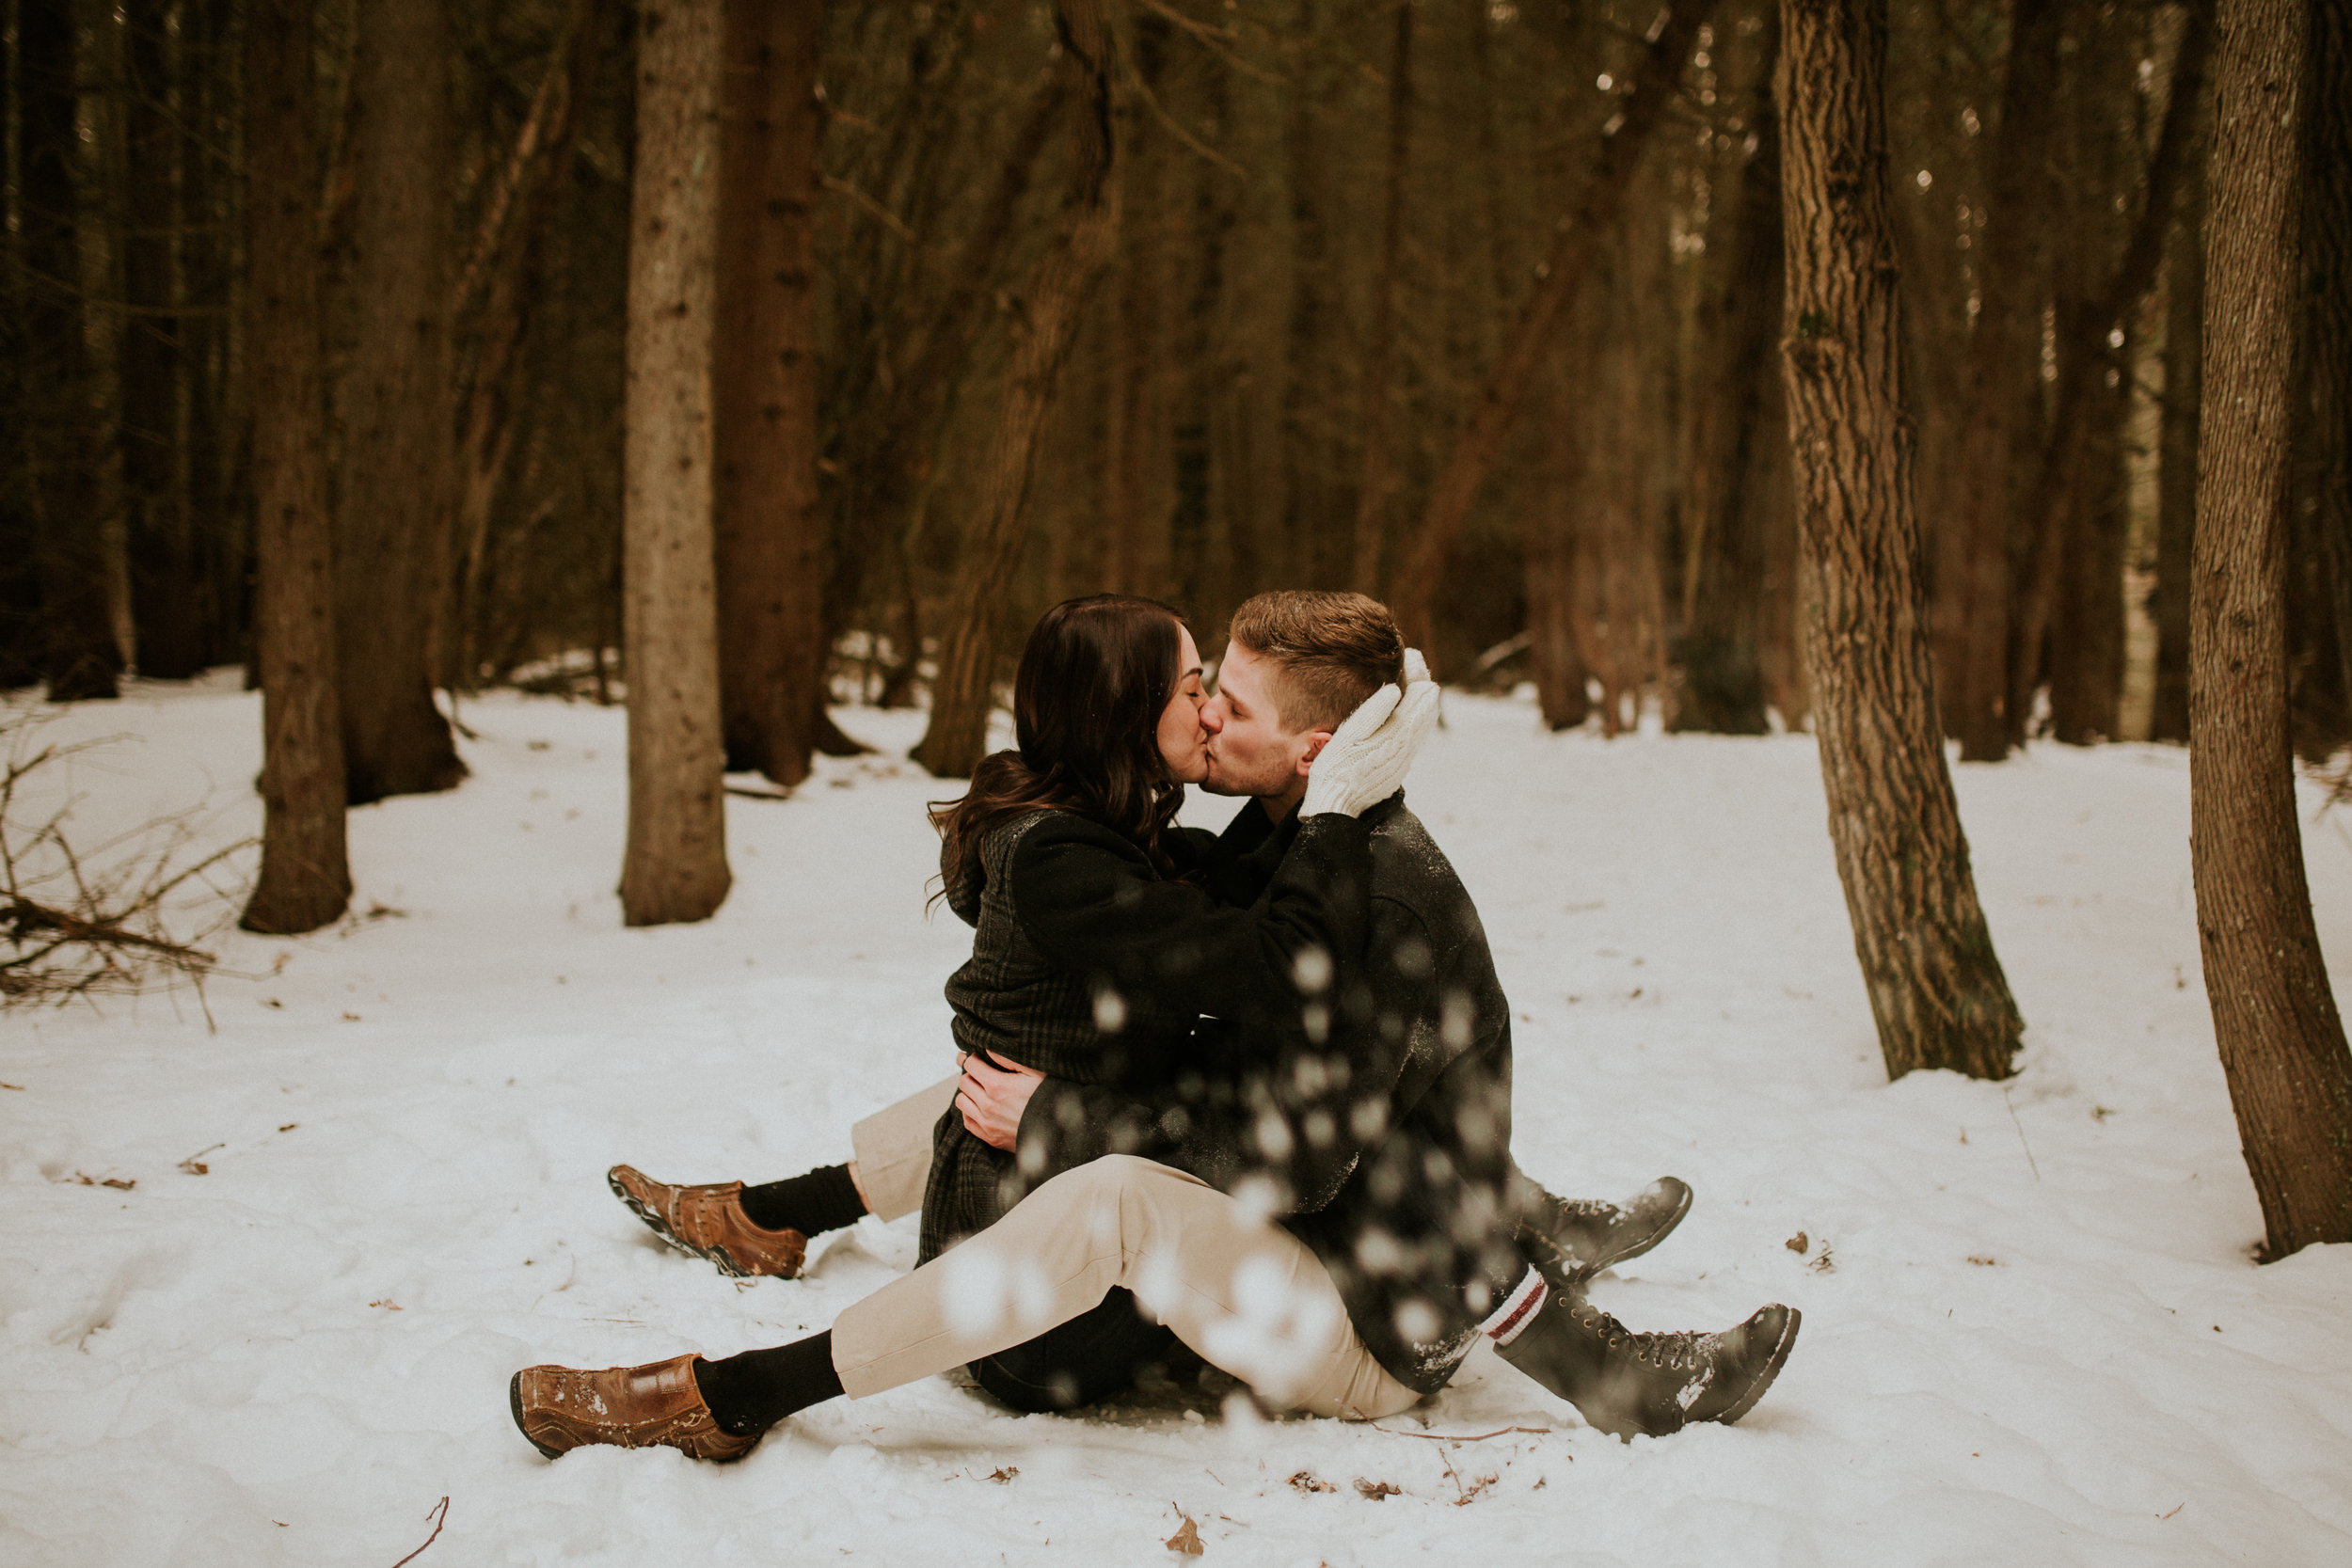 brighton ontario snow engagement photos